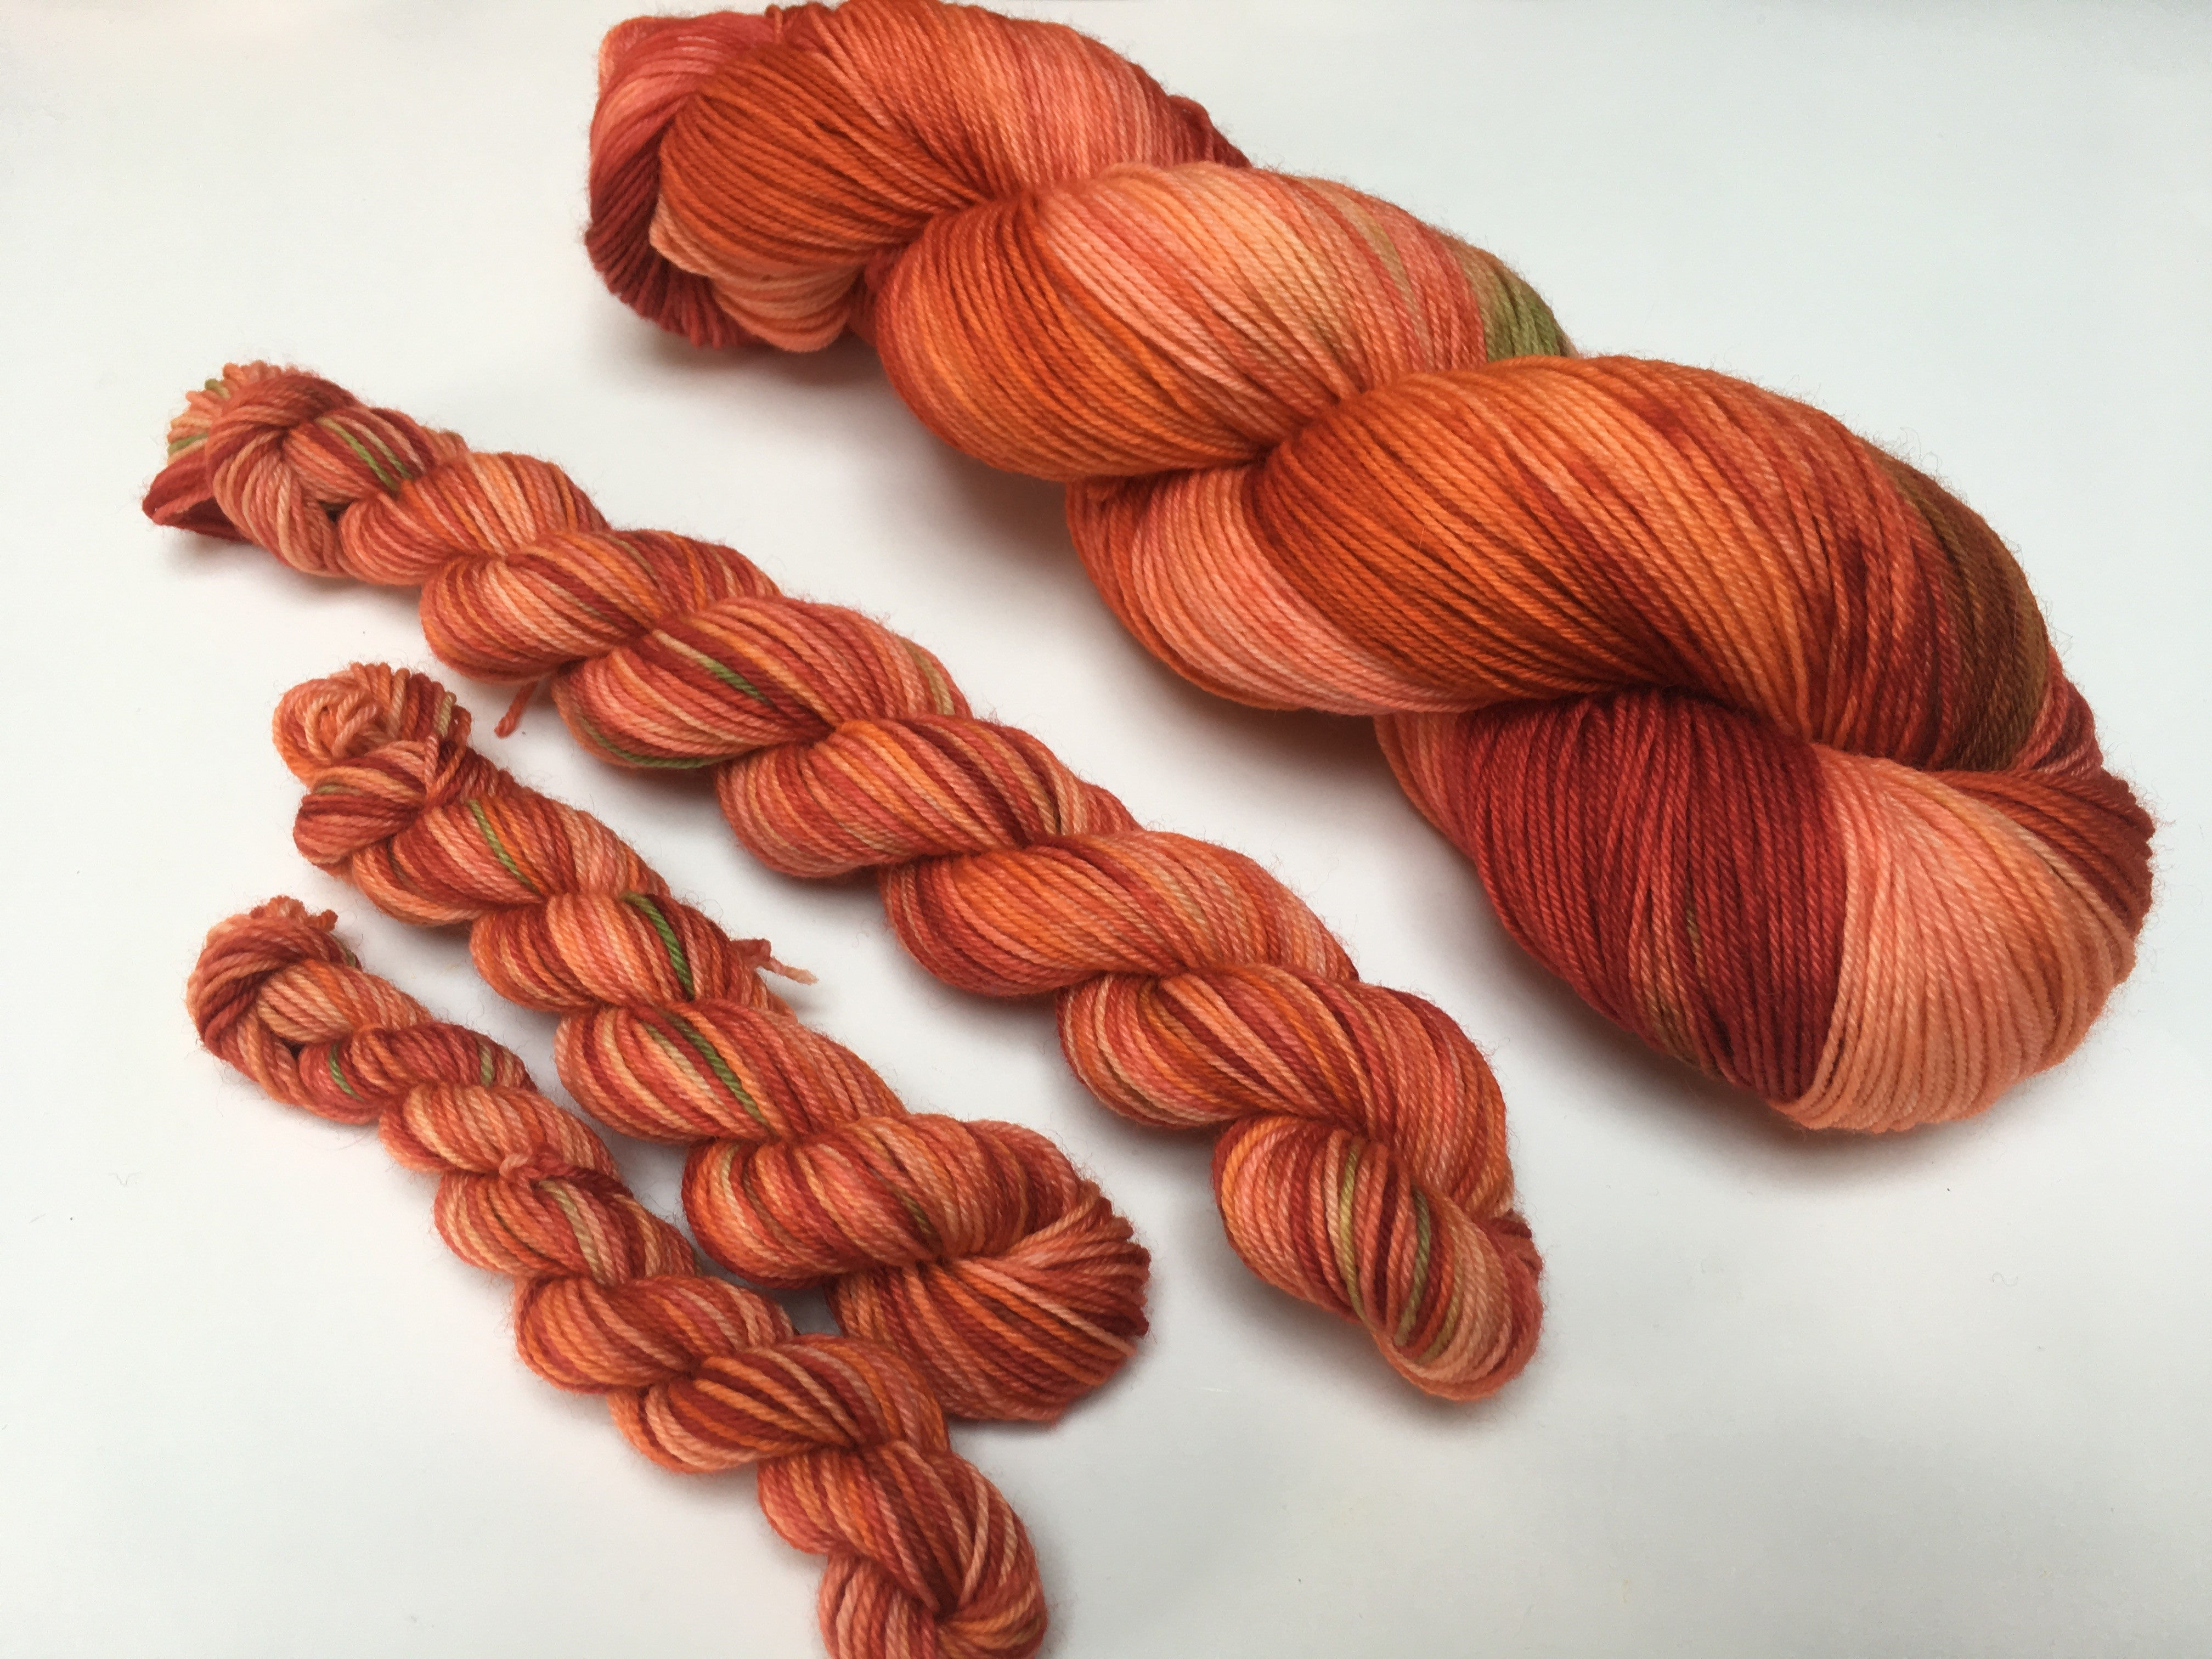 hand dyed tonal russet orange yarn for weaving, knitting and crochet